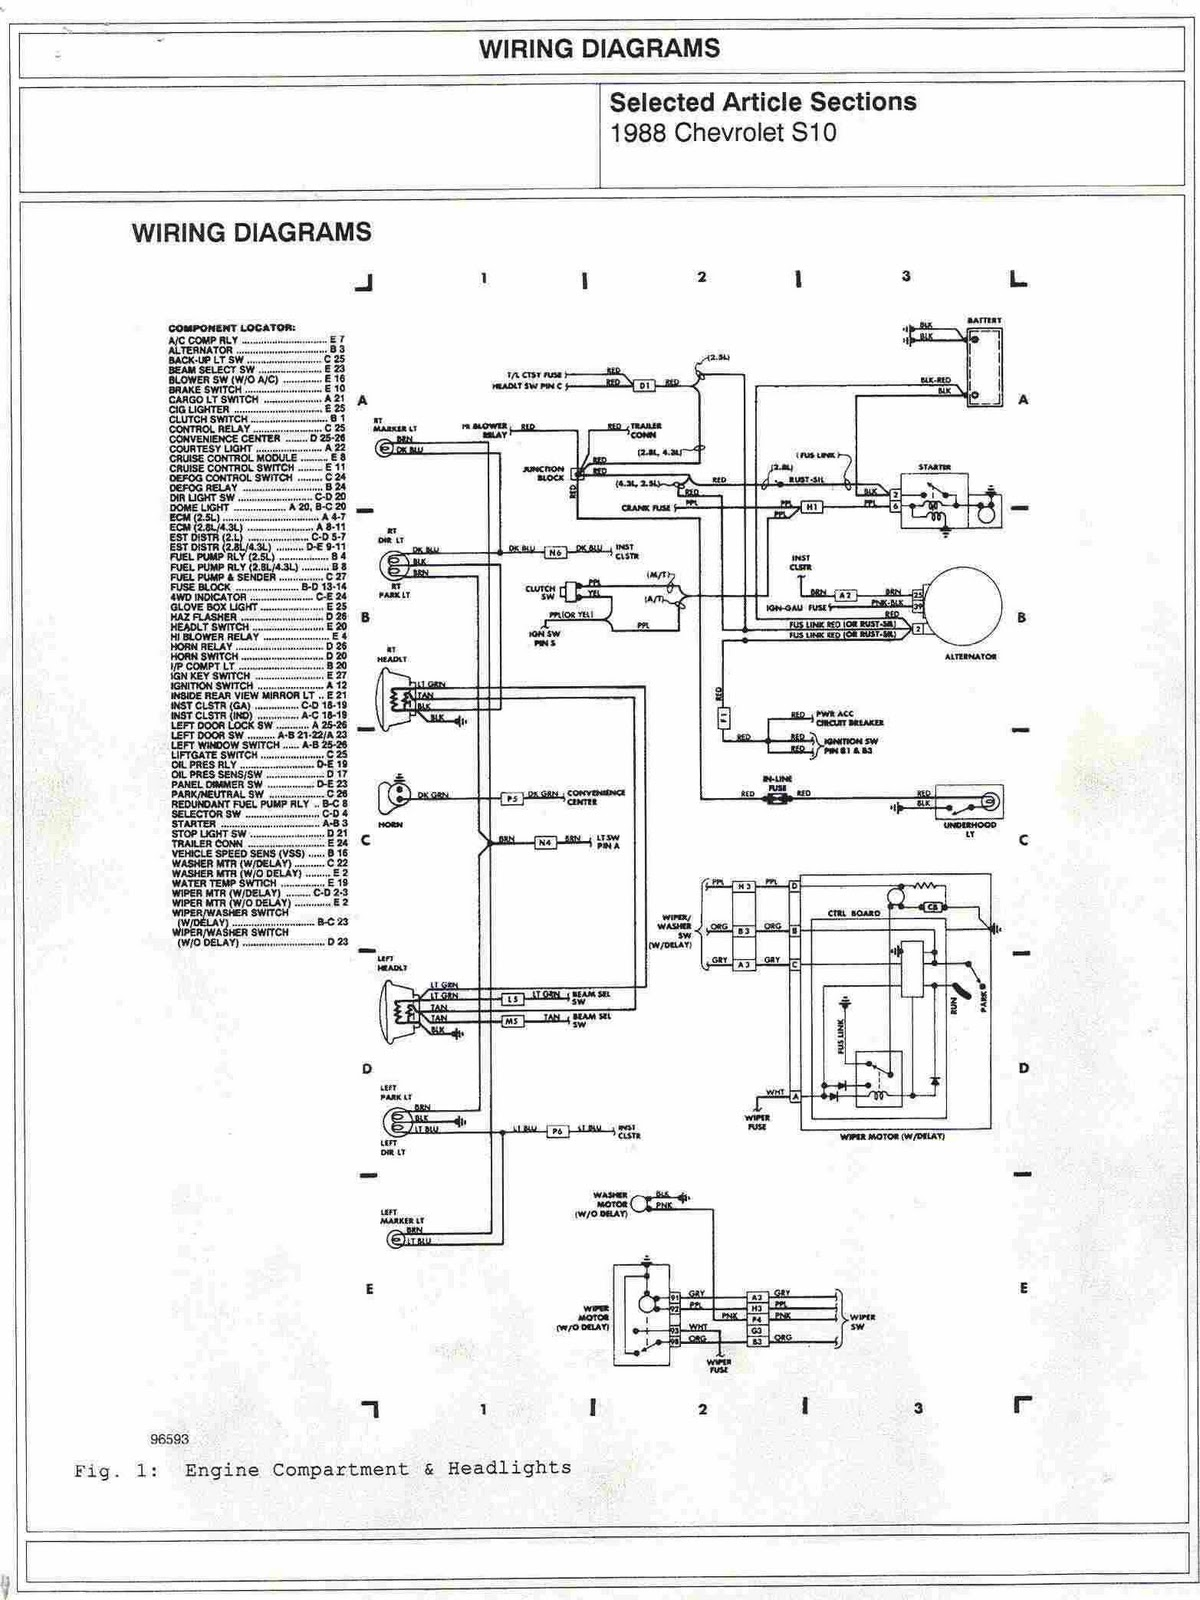 1988 Chevy Engine Diagram | Motorcycle Pictures